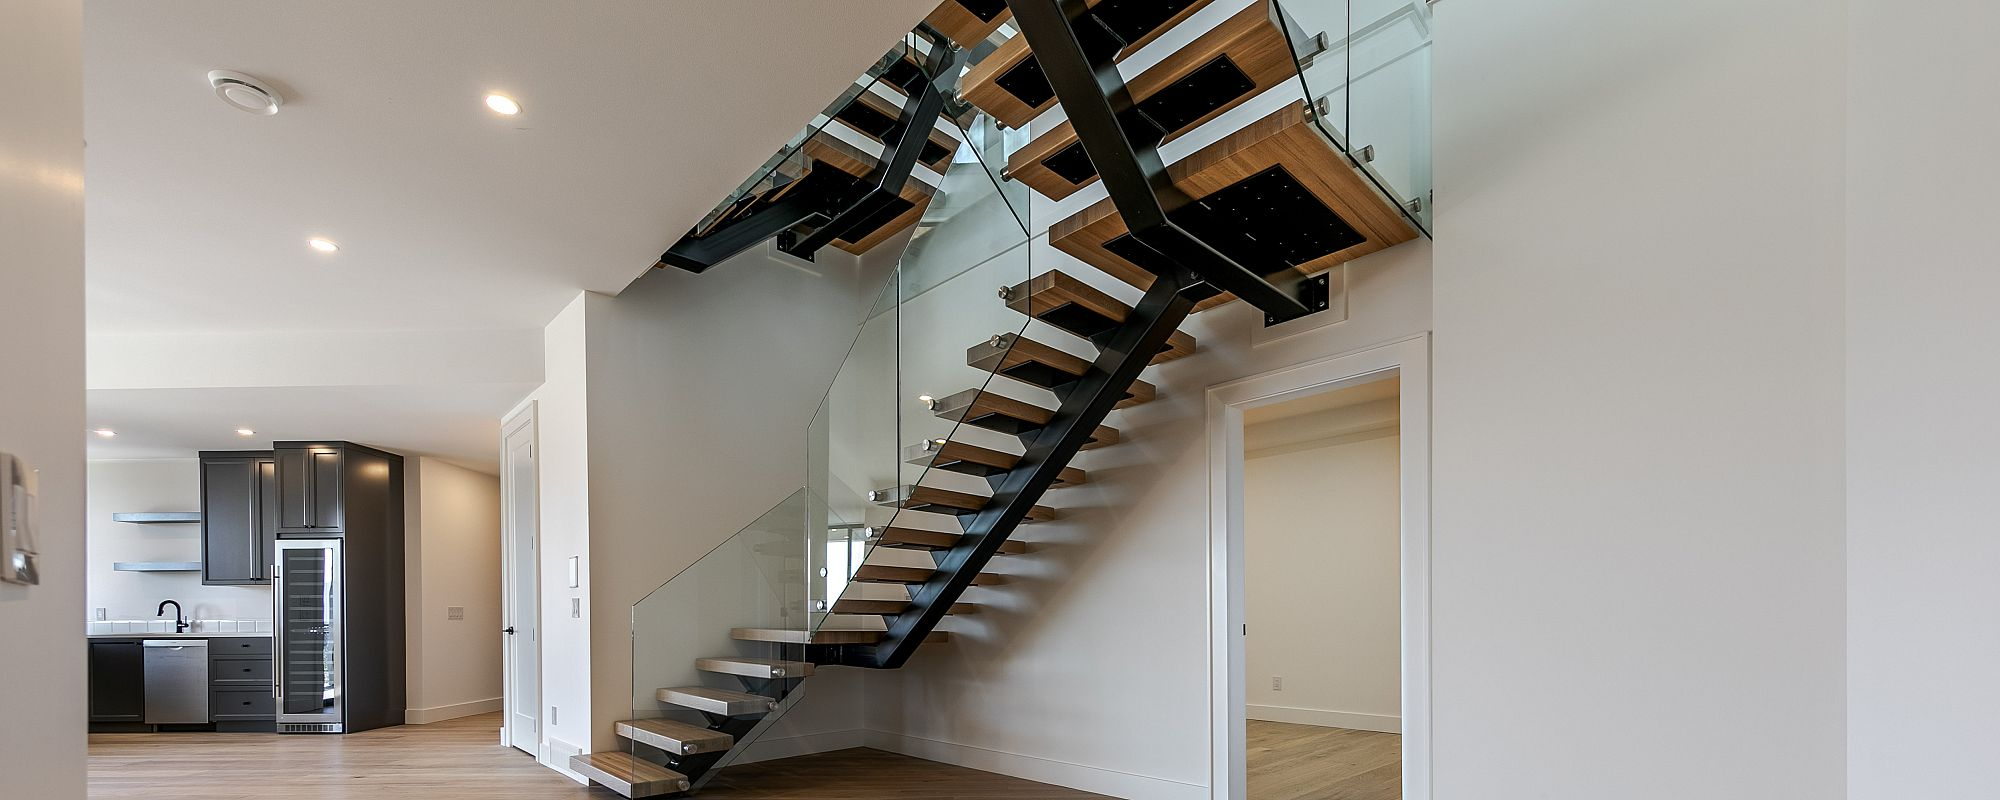 Feature staircase with wooden steps and black beams